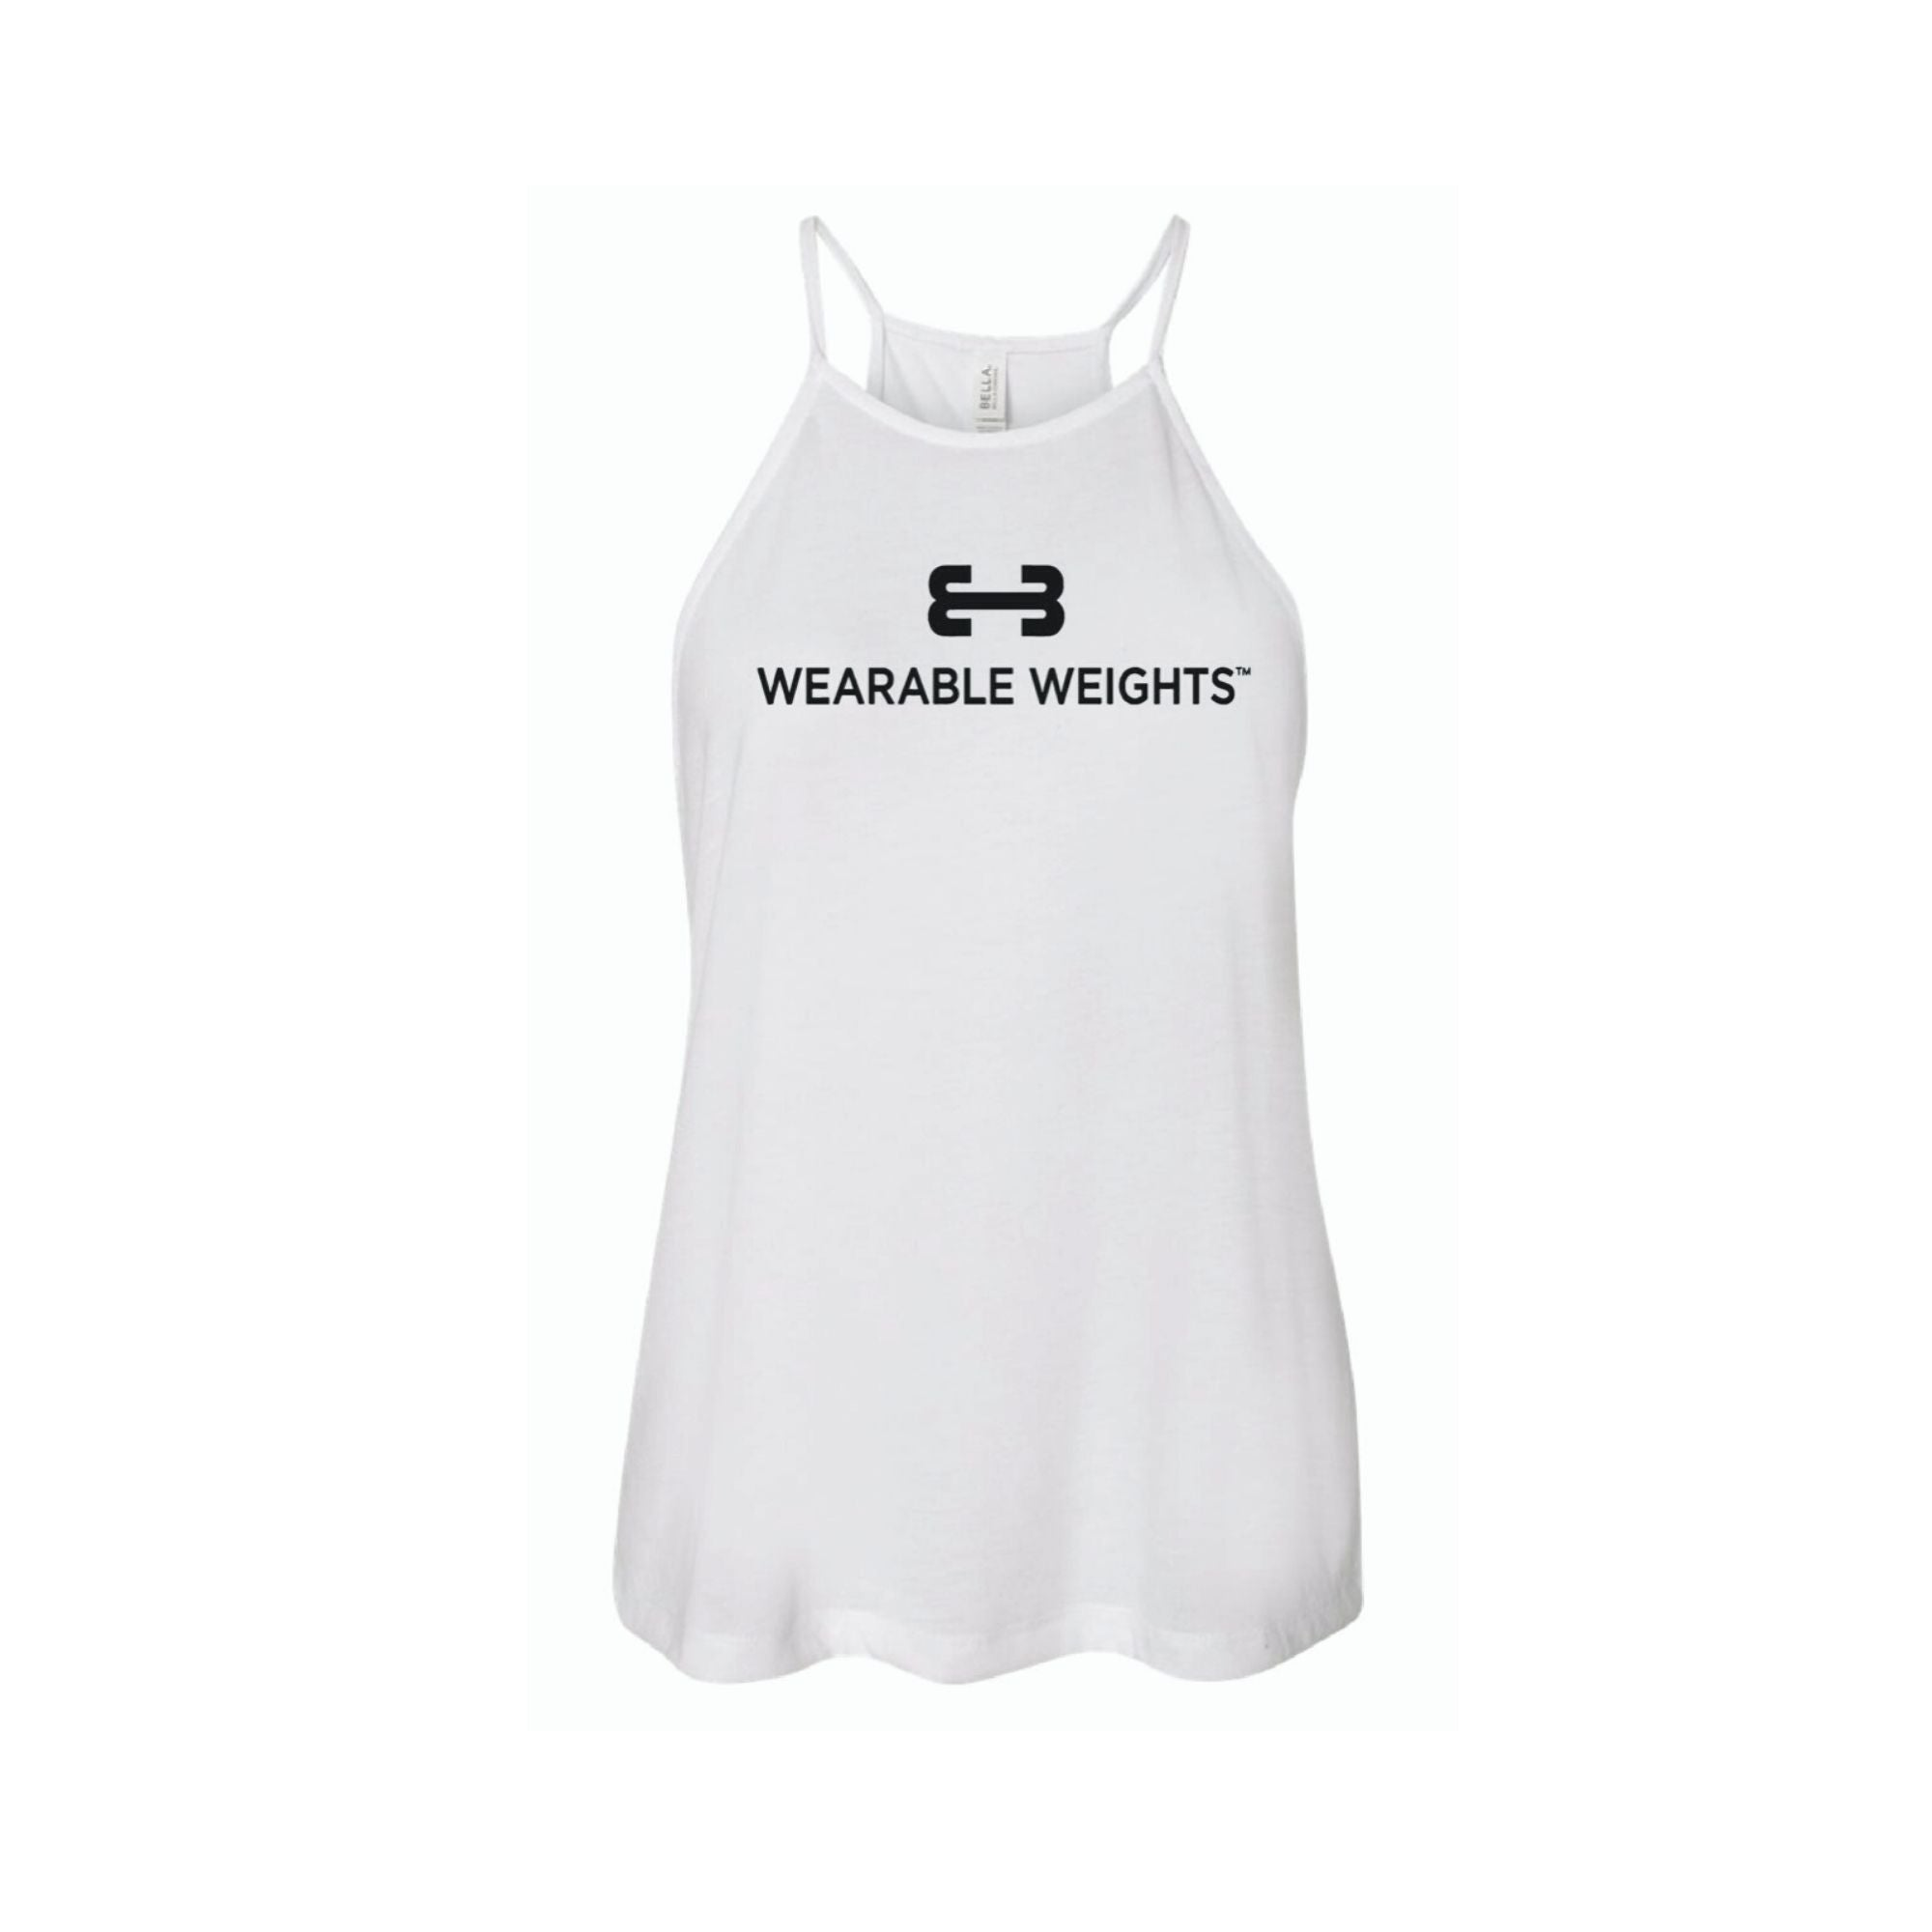 Wearable Weights – White Flowy Tank